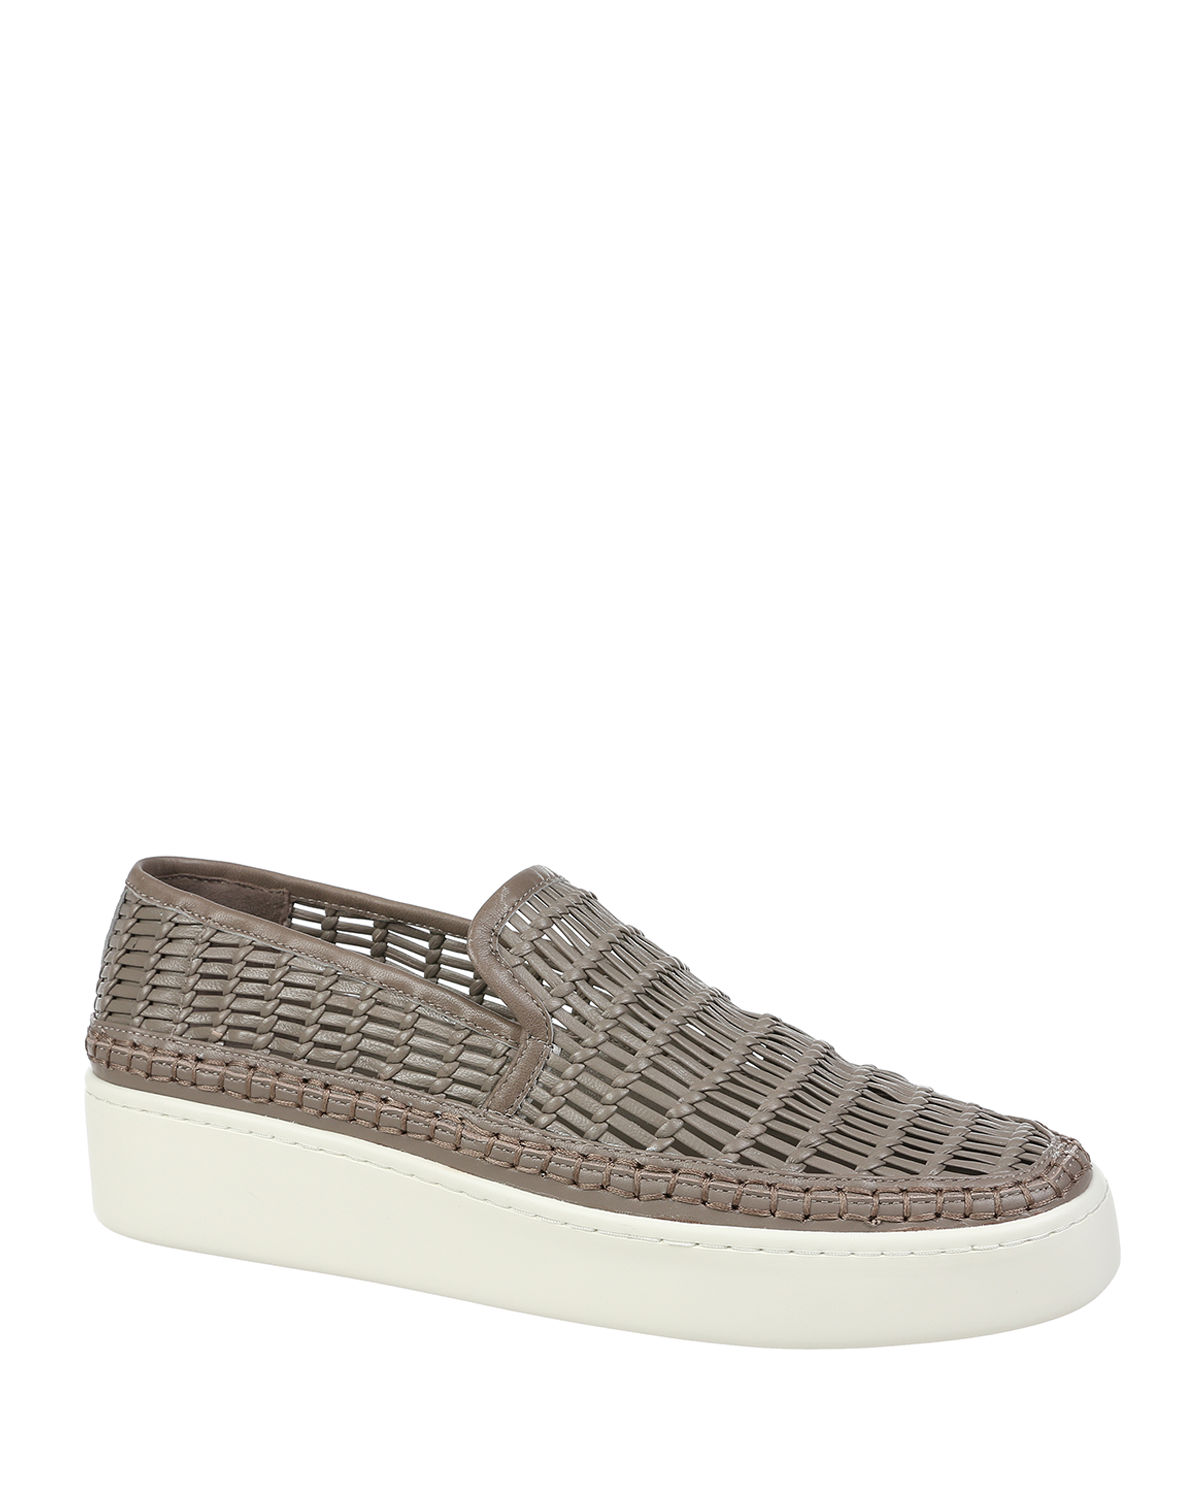 Vince Leathers STAFFORD WOVEN LEATHER SNEAKERS